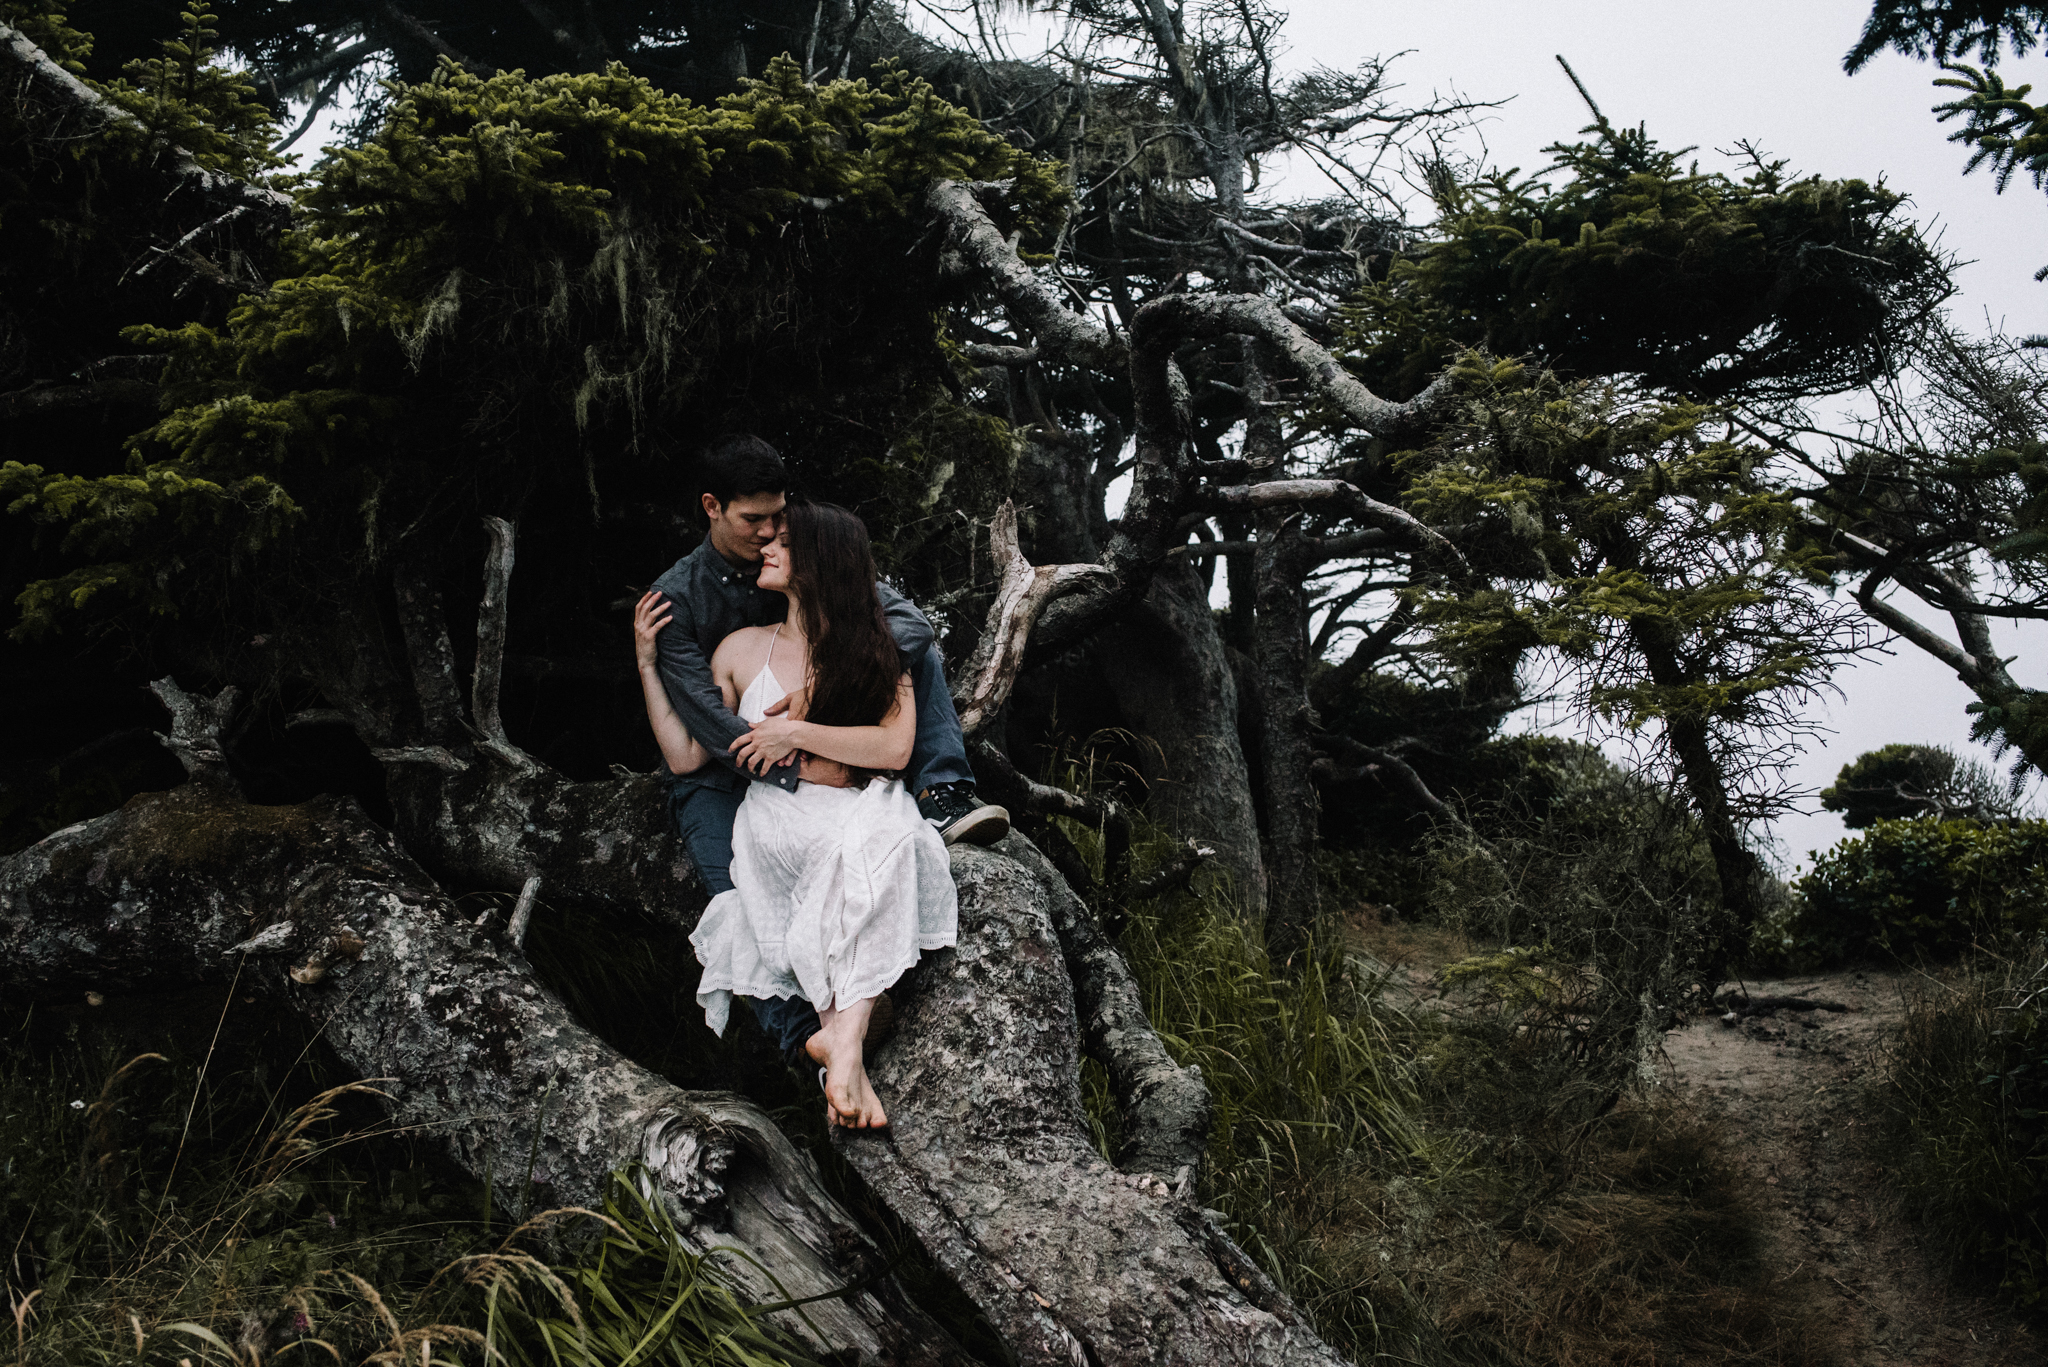 Ruthie and Anthony - Foggy Oregon Coast Couple Adventure Session - White Sails Photography Creative_50.JPG